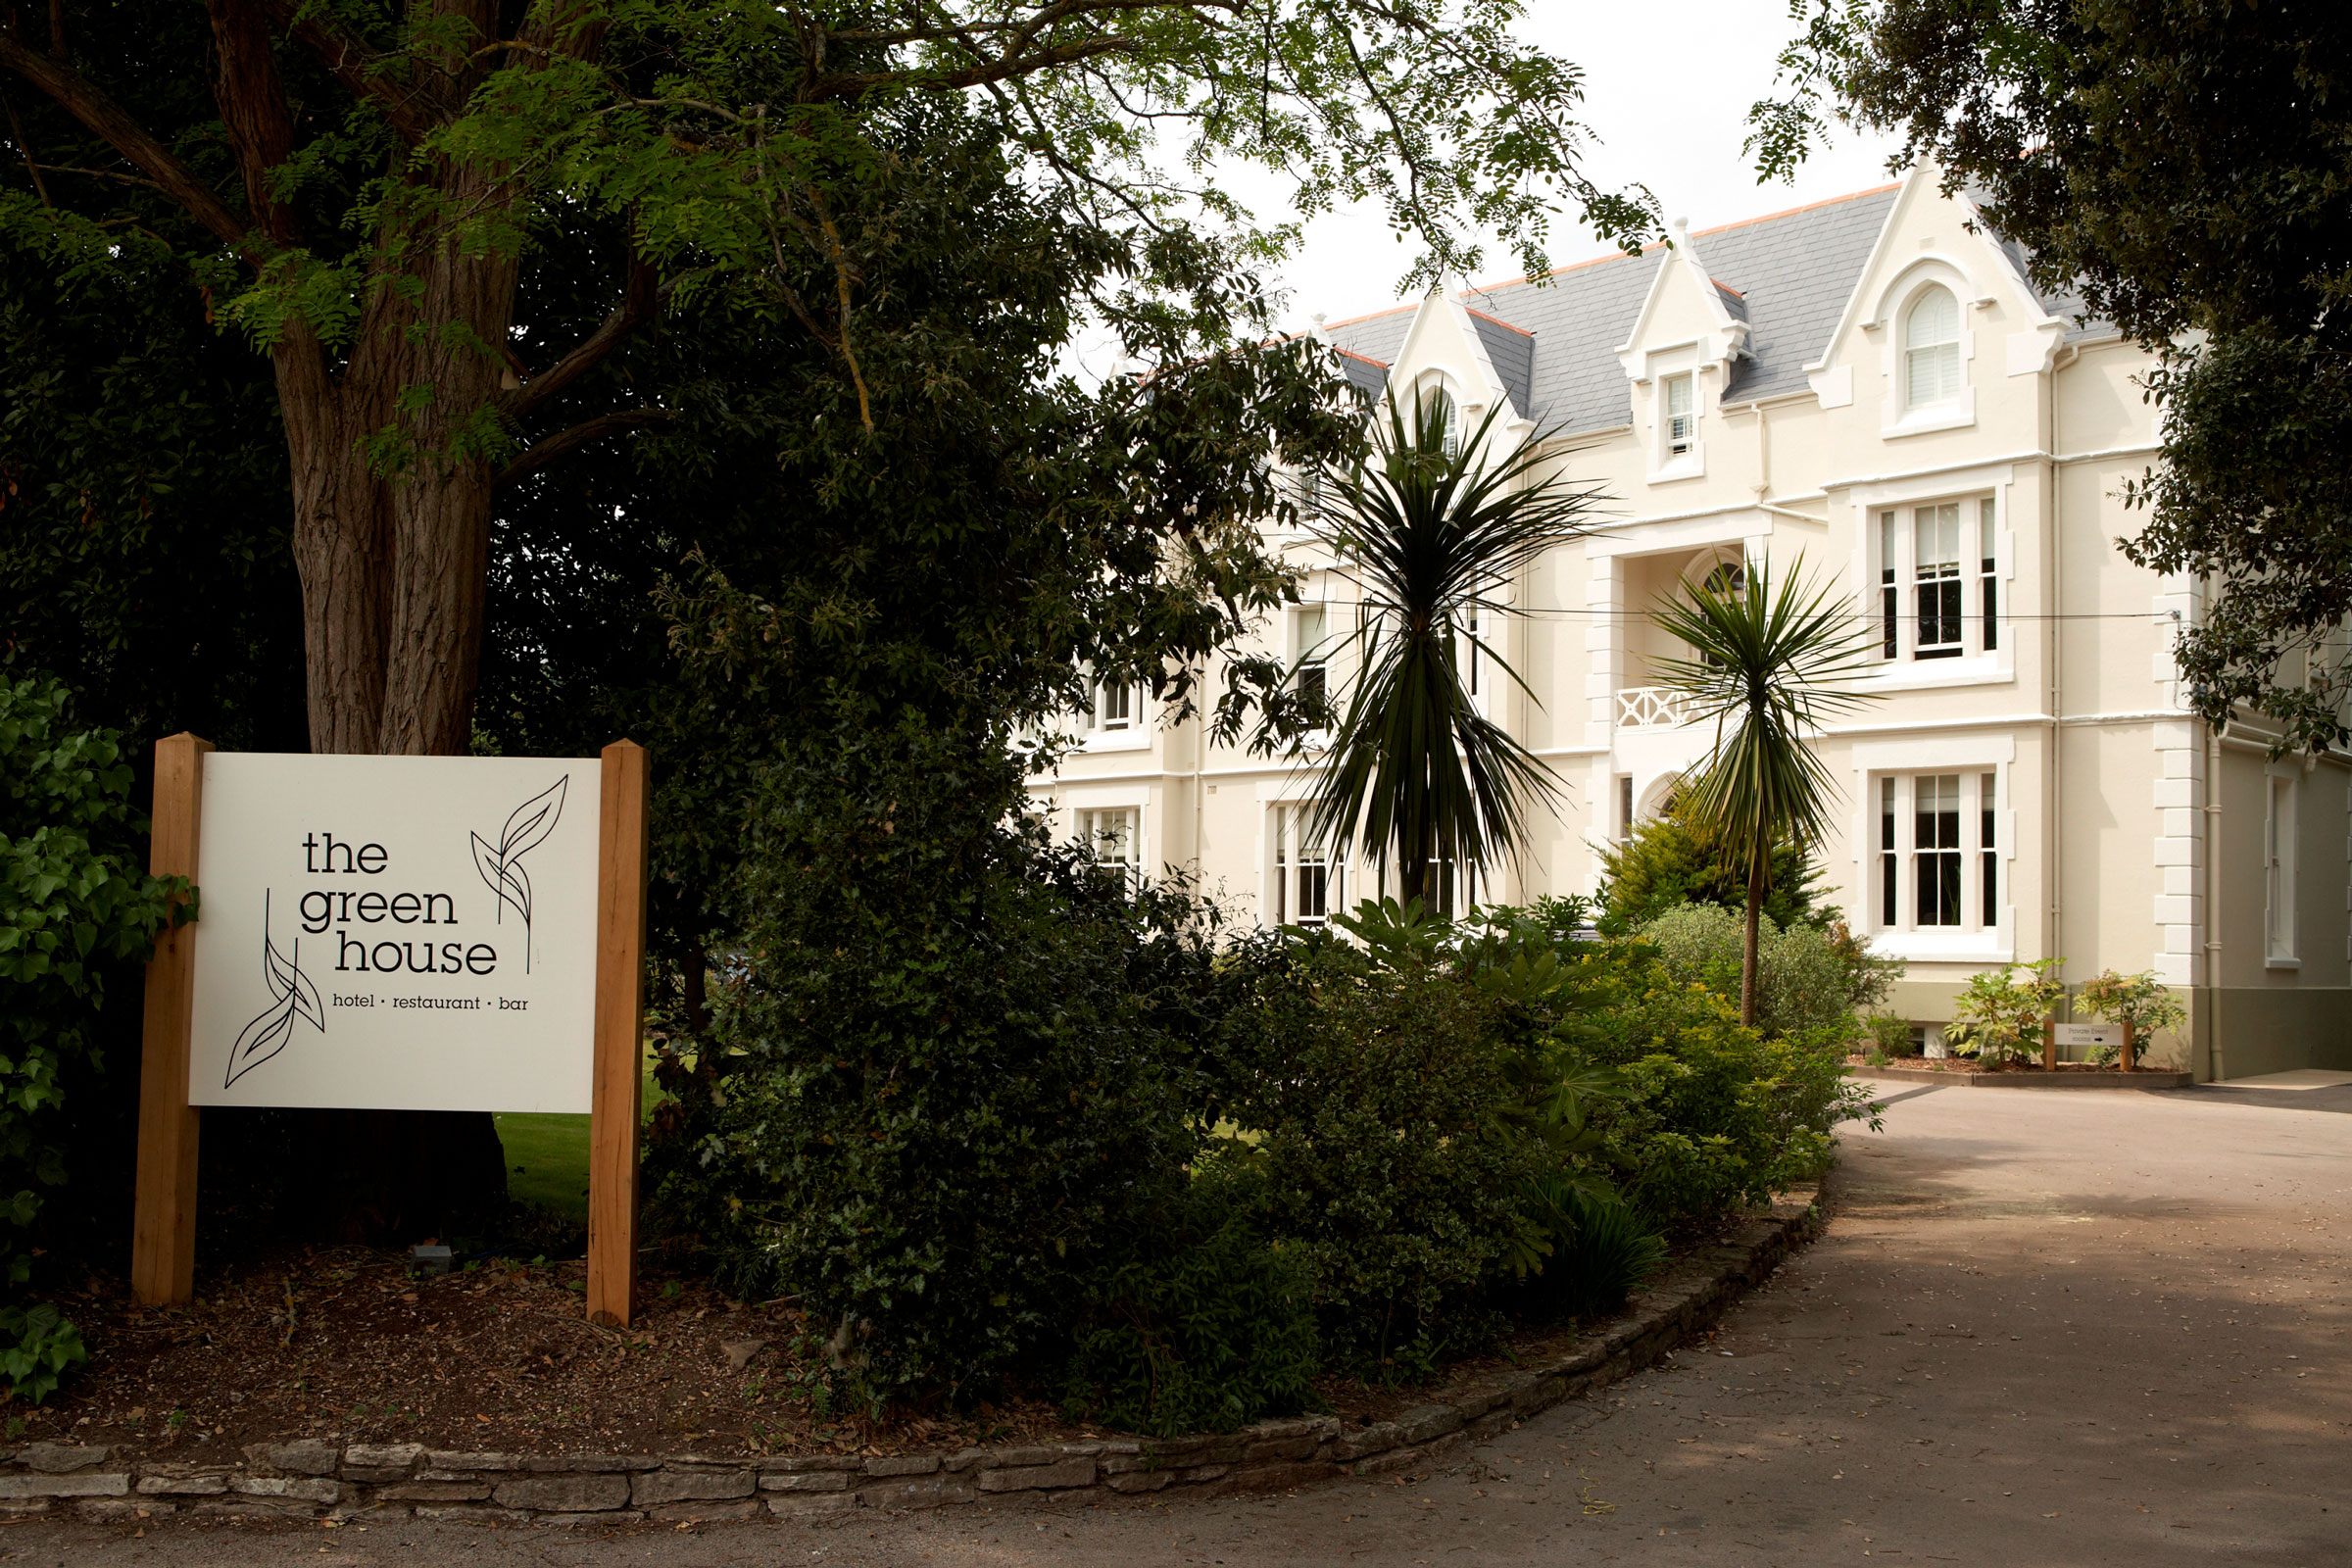 1_THE_GREEN_HOUSE__BOURNEMOUTH.jpg?1556019841